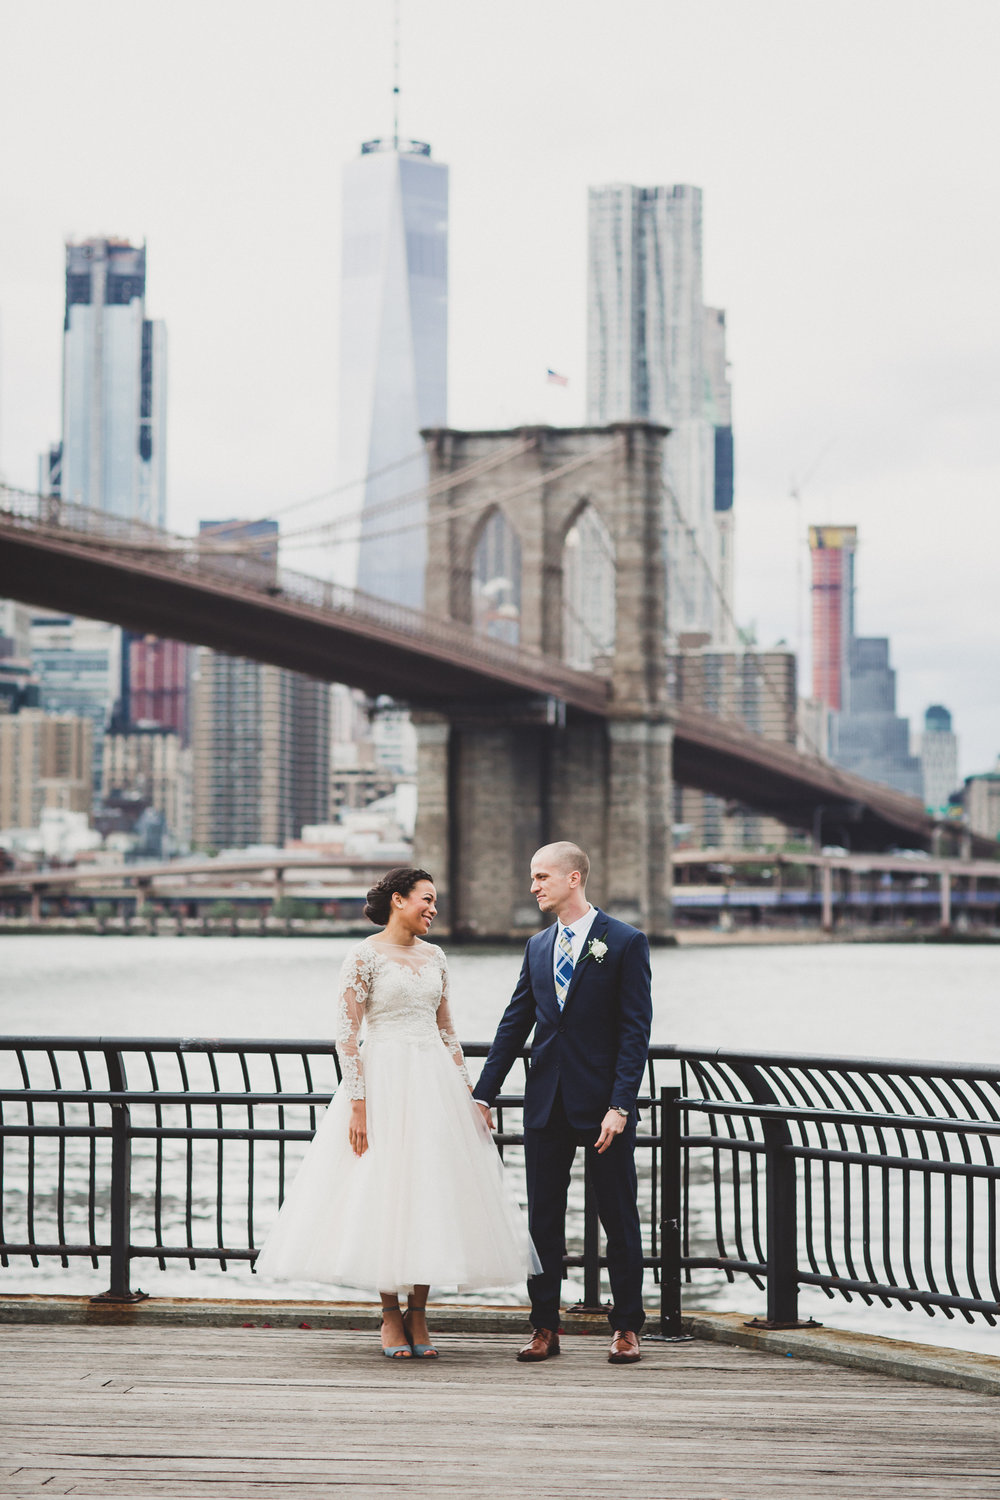 Wagner-Cove-Central-Park-Elopement-New-York-Documentary-Wedding-Photographer-44.jpg